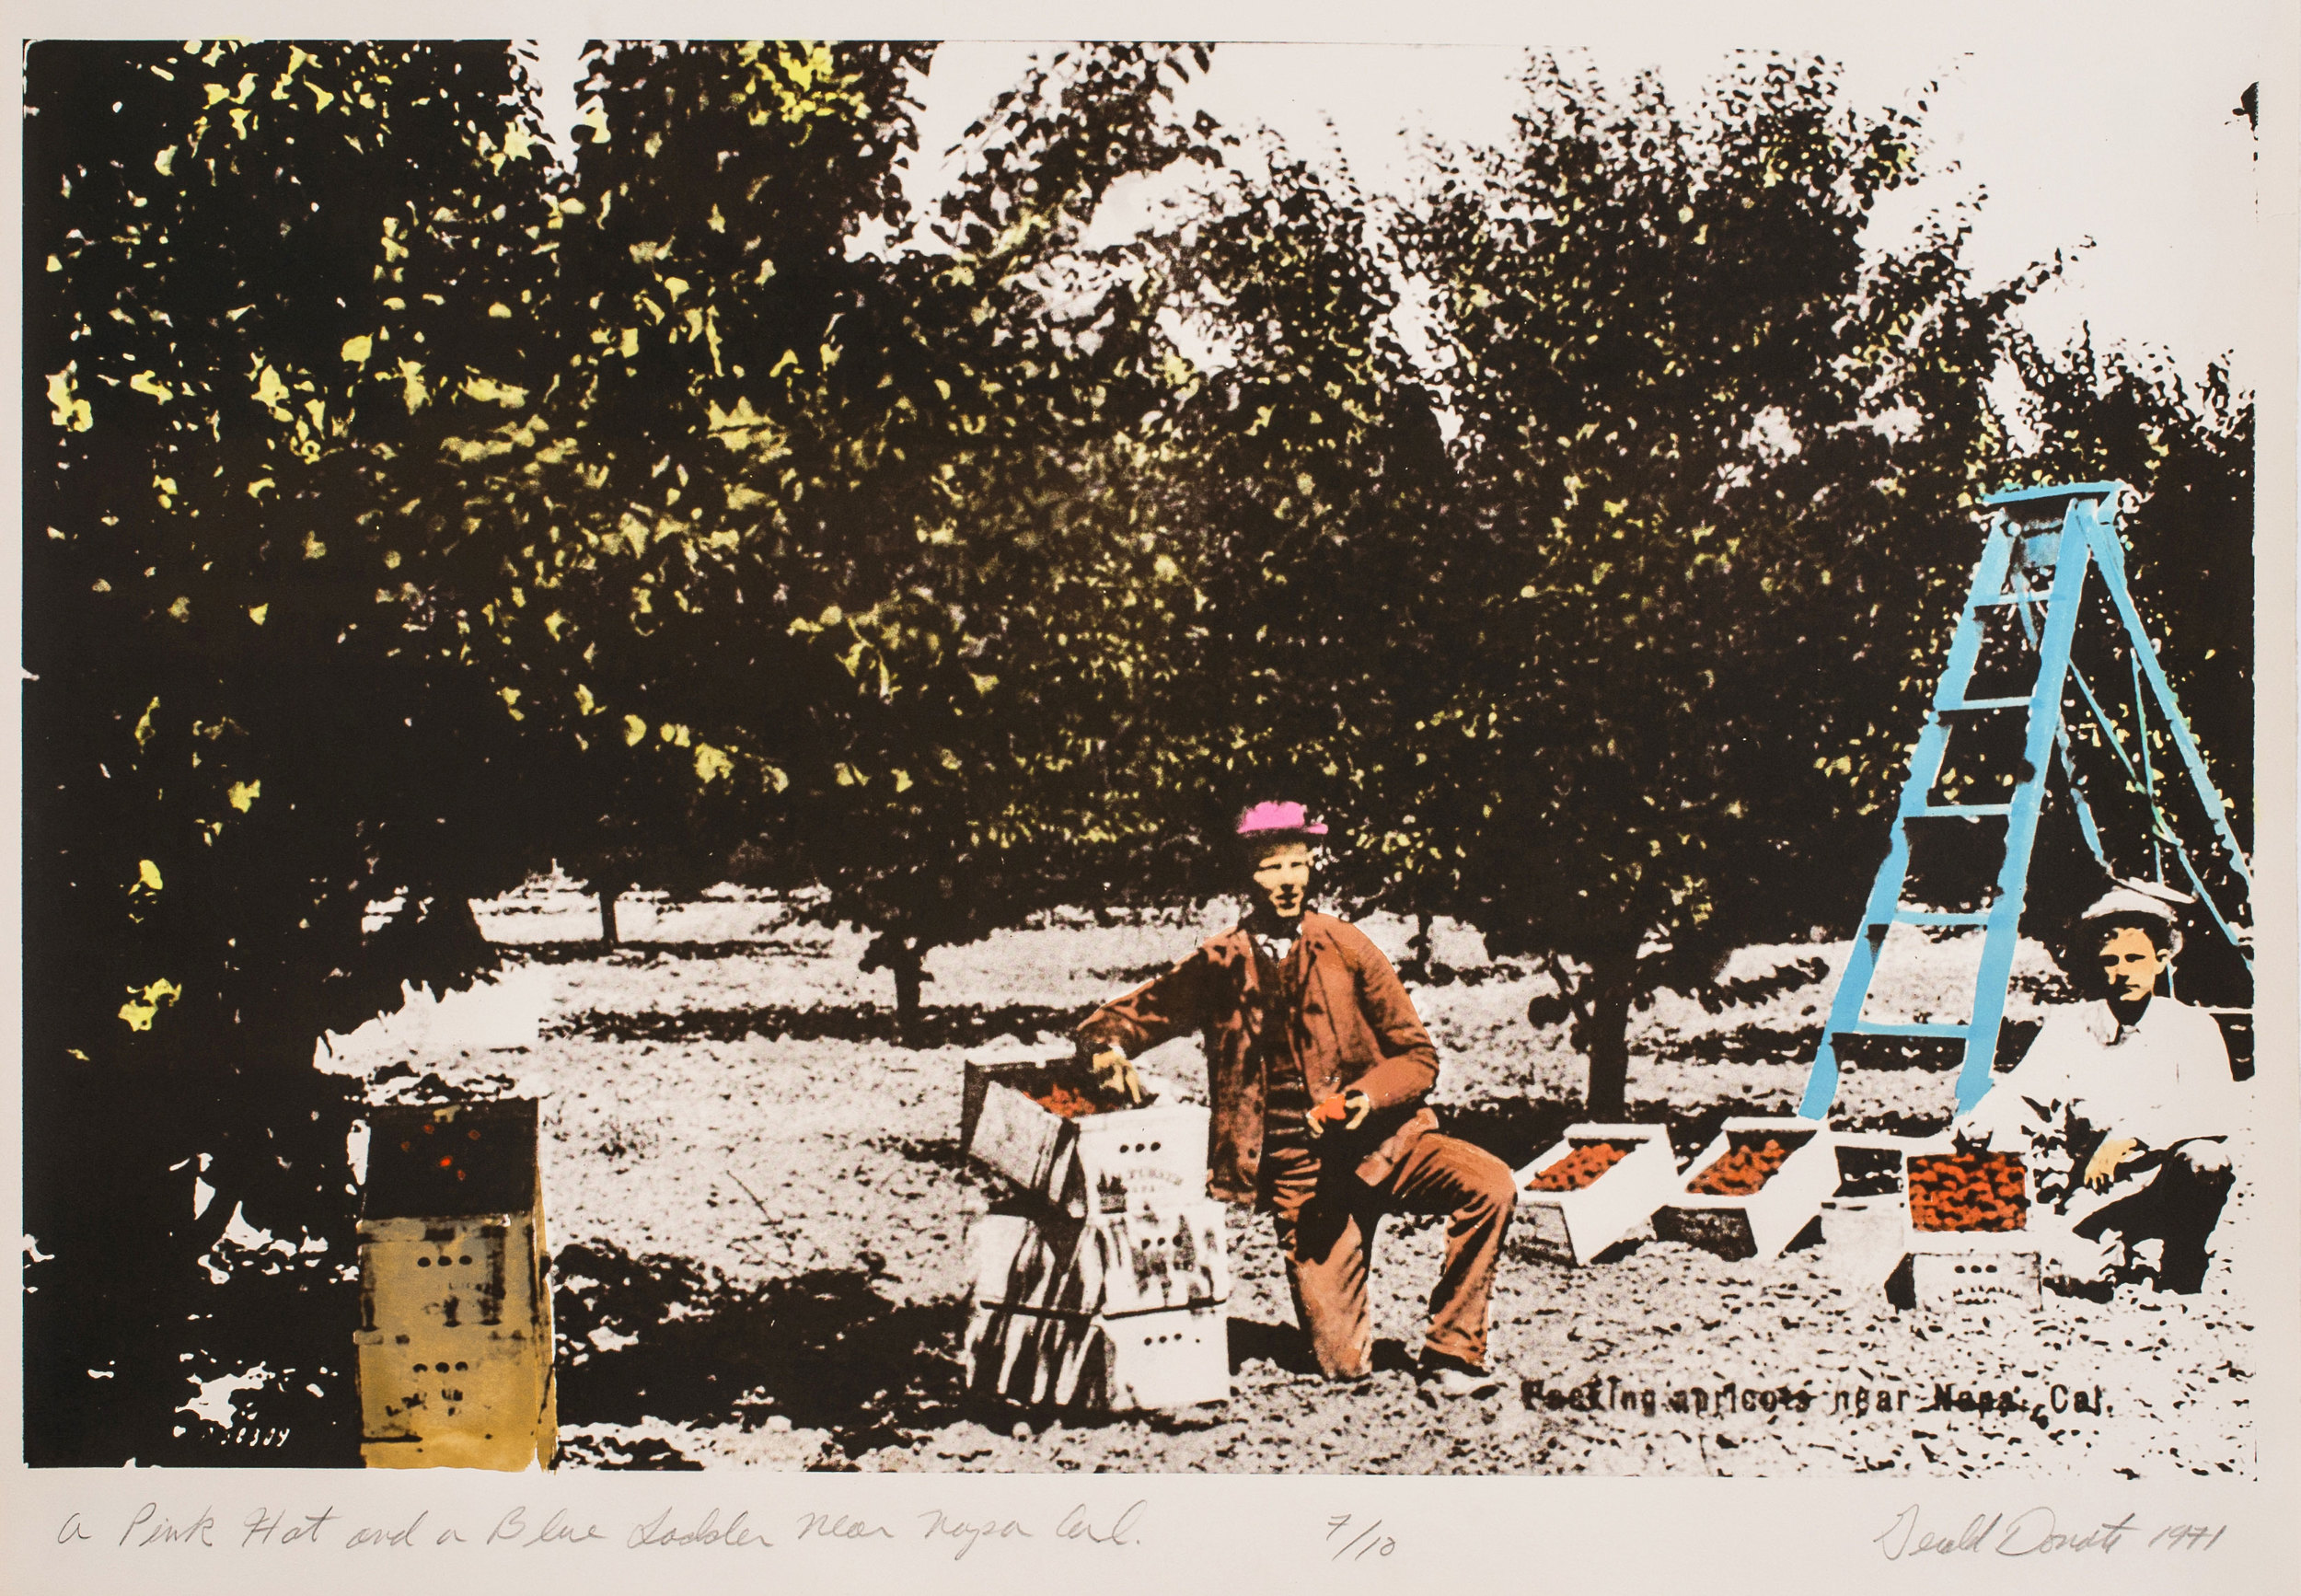 """Gerald Donato,  A Pink Hat and Blue Ladder Near Napa, Cal. , 1971, photo-lithograph, 22 1/4"""" x 29 3/4"""""""